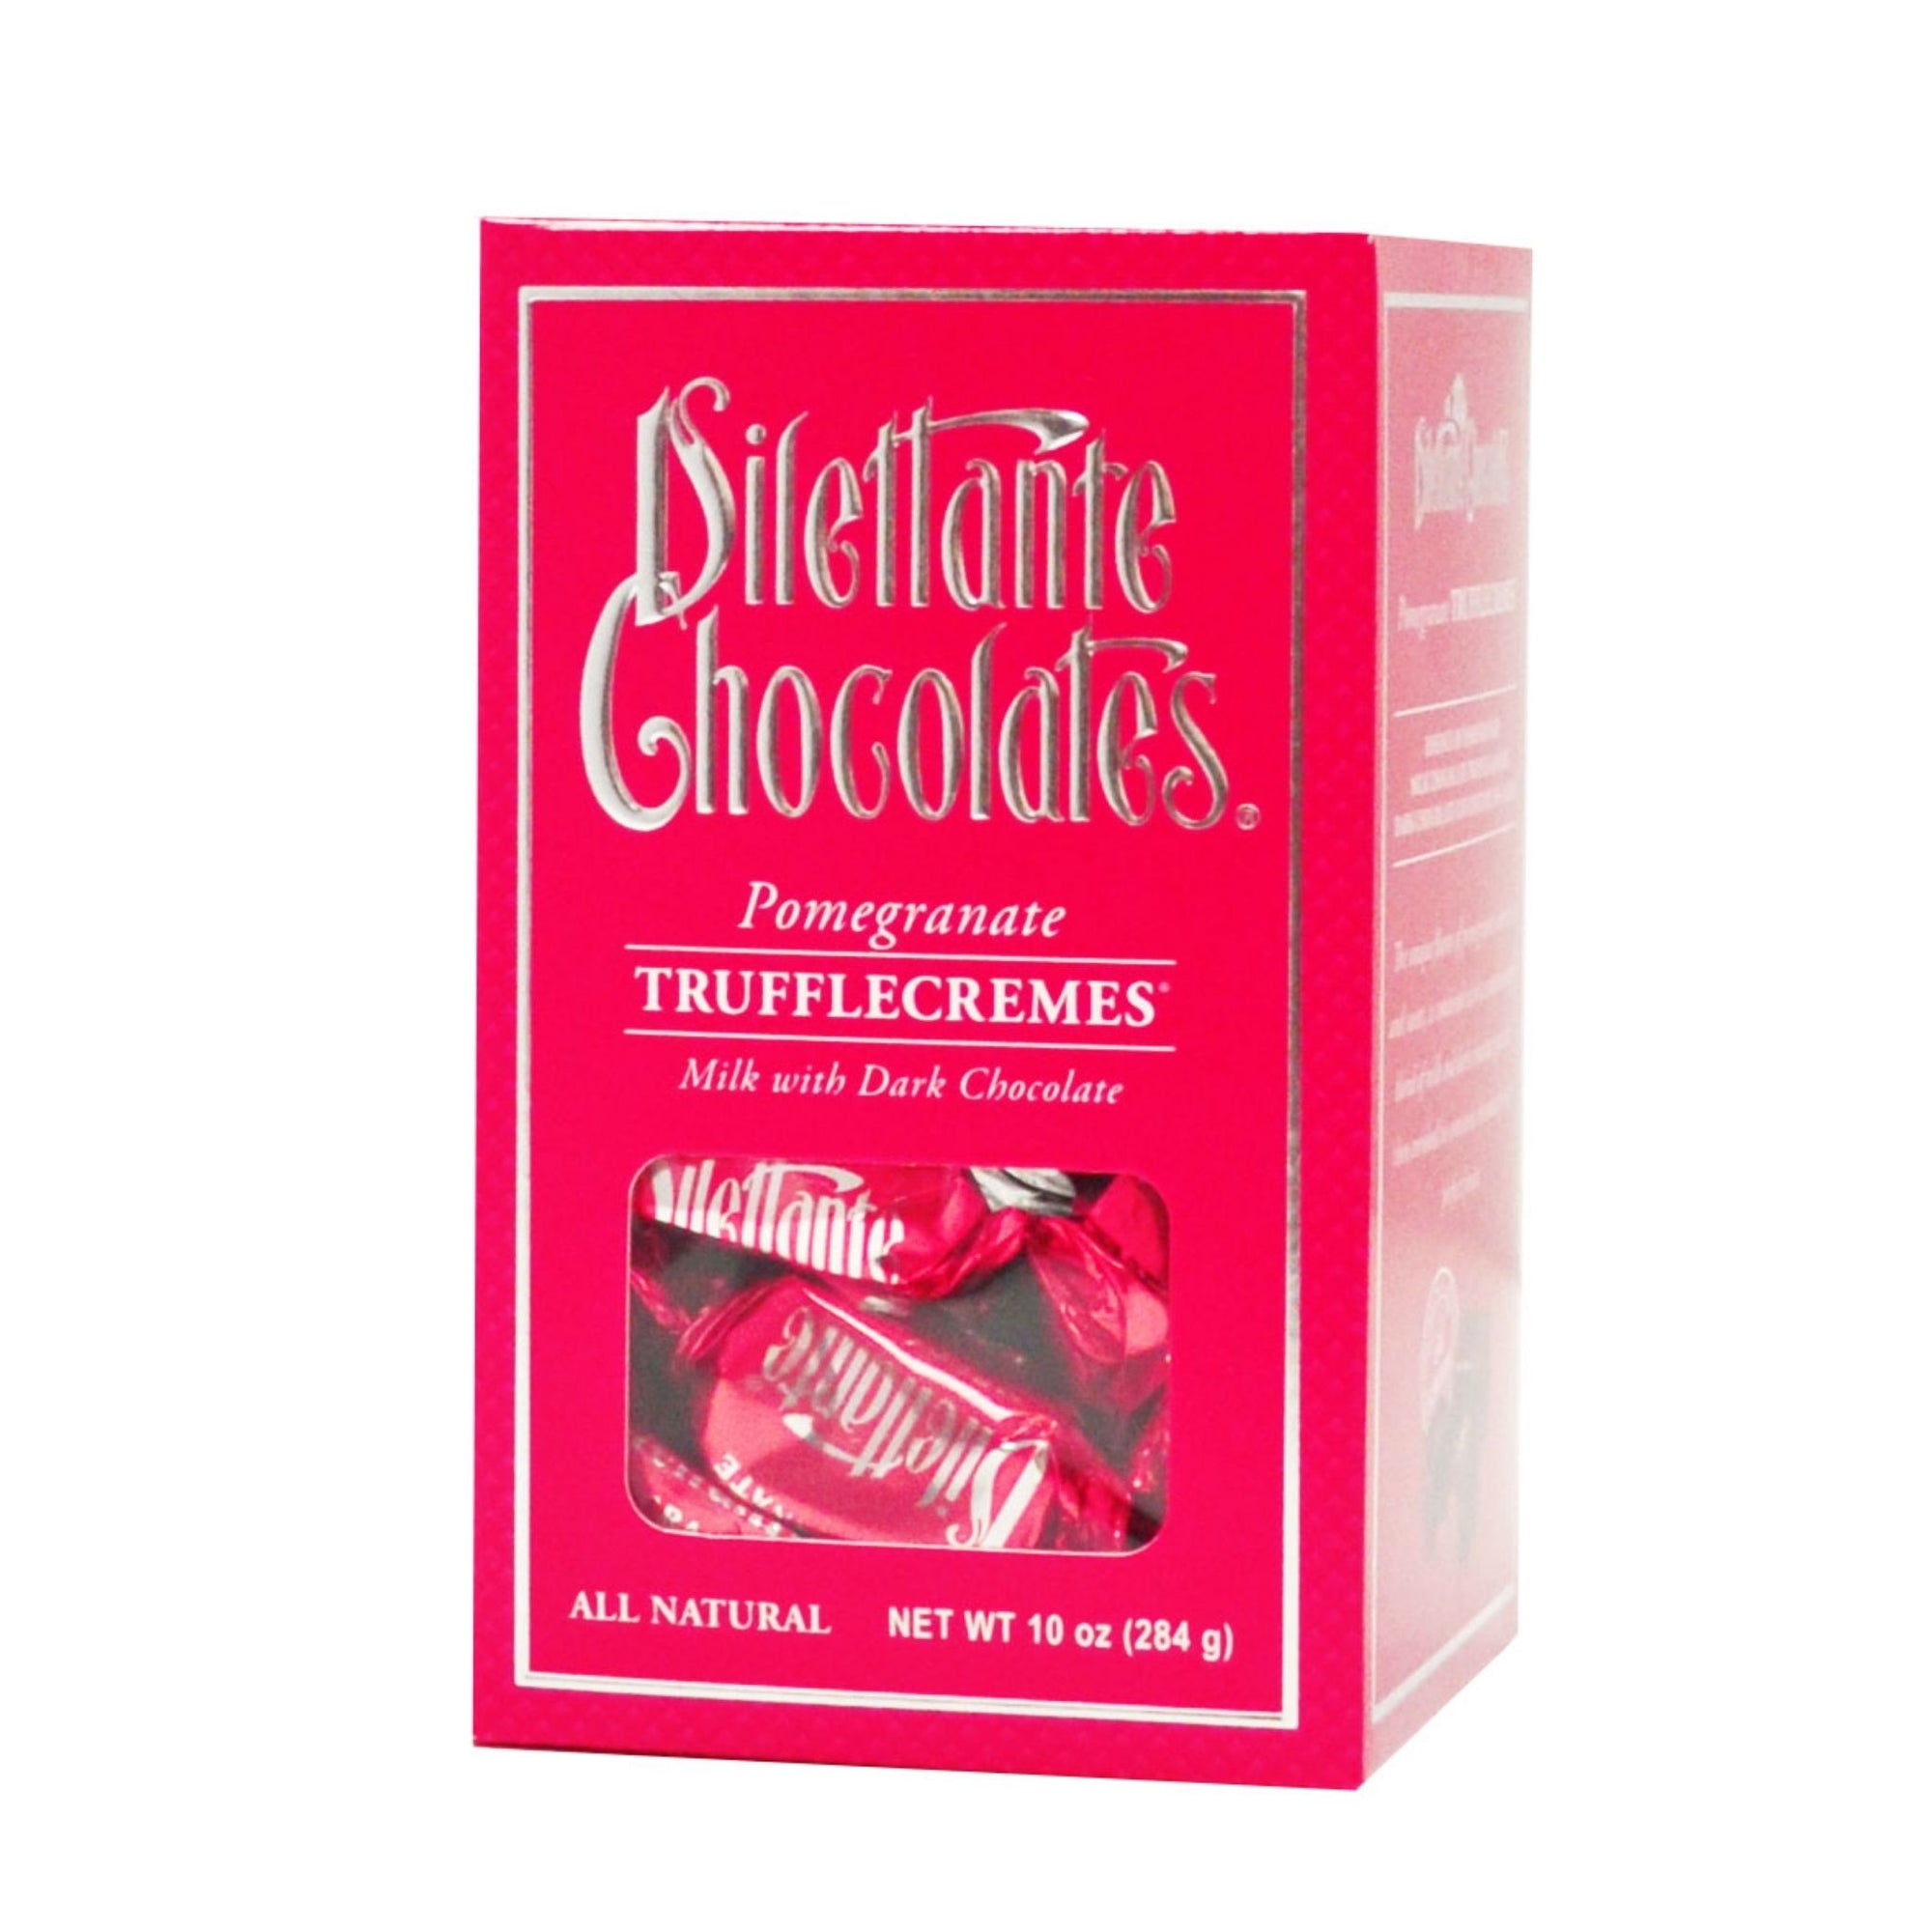 Dilettante Chocolates Pomegranate TruffleCremes Coated in Milk and Dark Chocolate in a Pink Gift Box